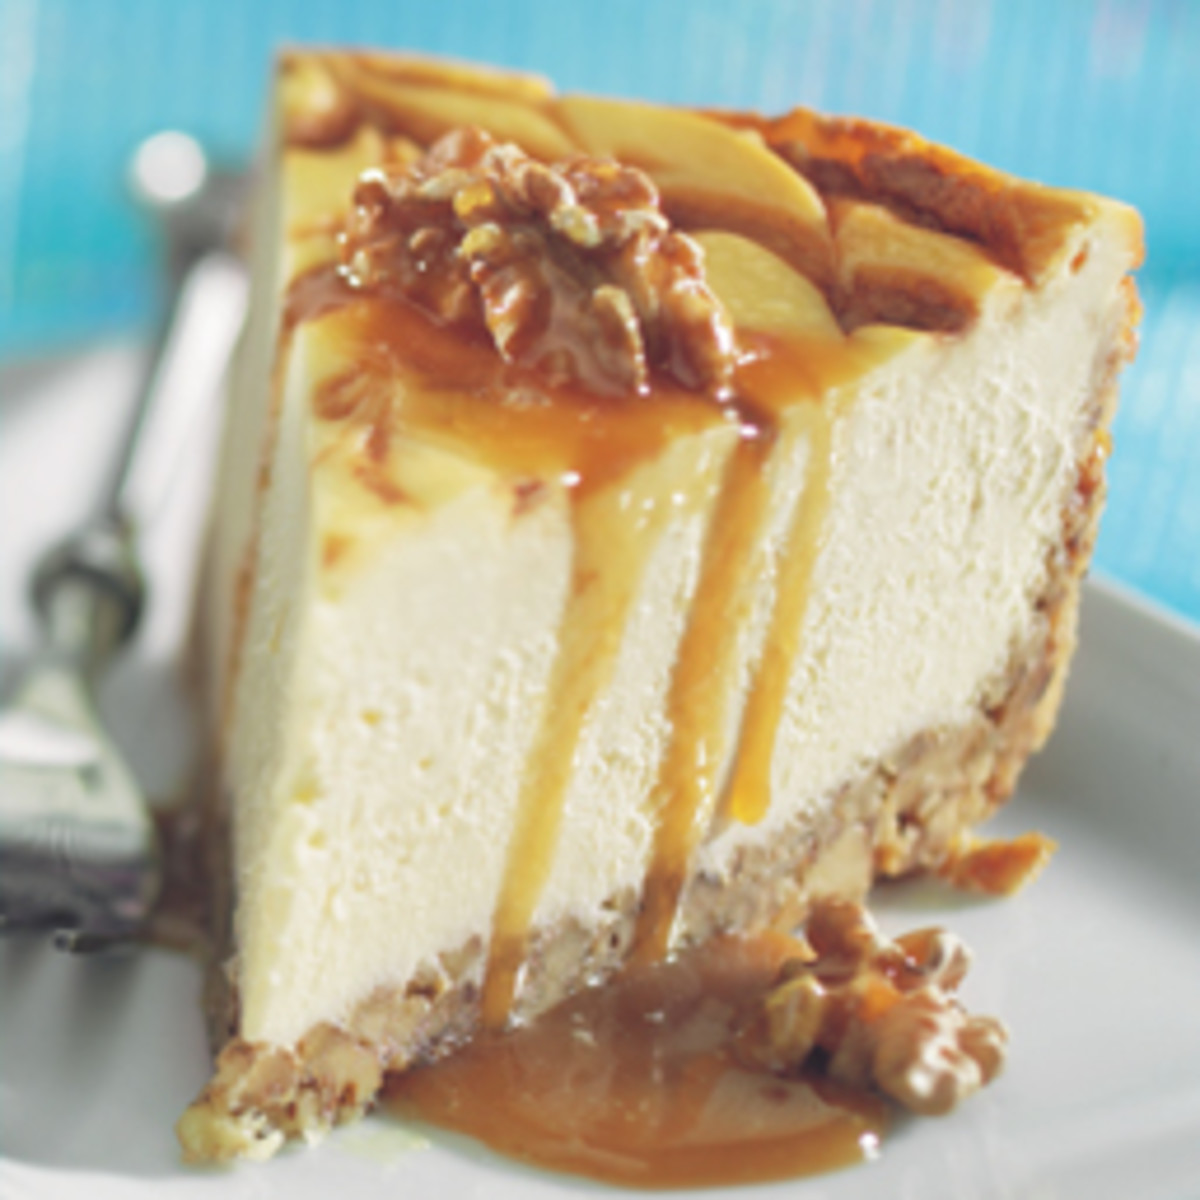 Walnut Crusted Caramel-Bourbon Swirl Cheesecake